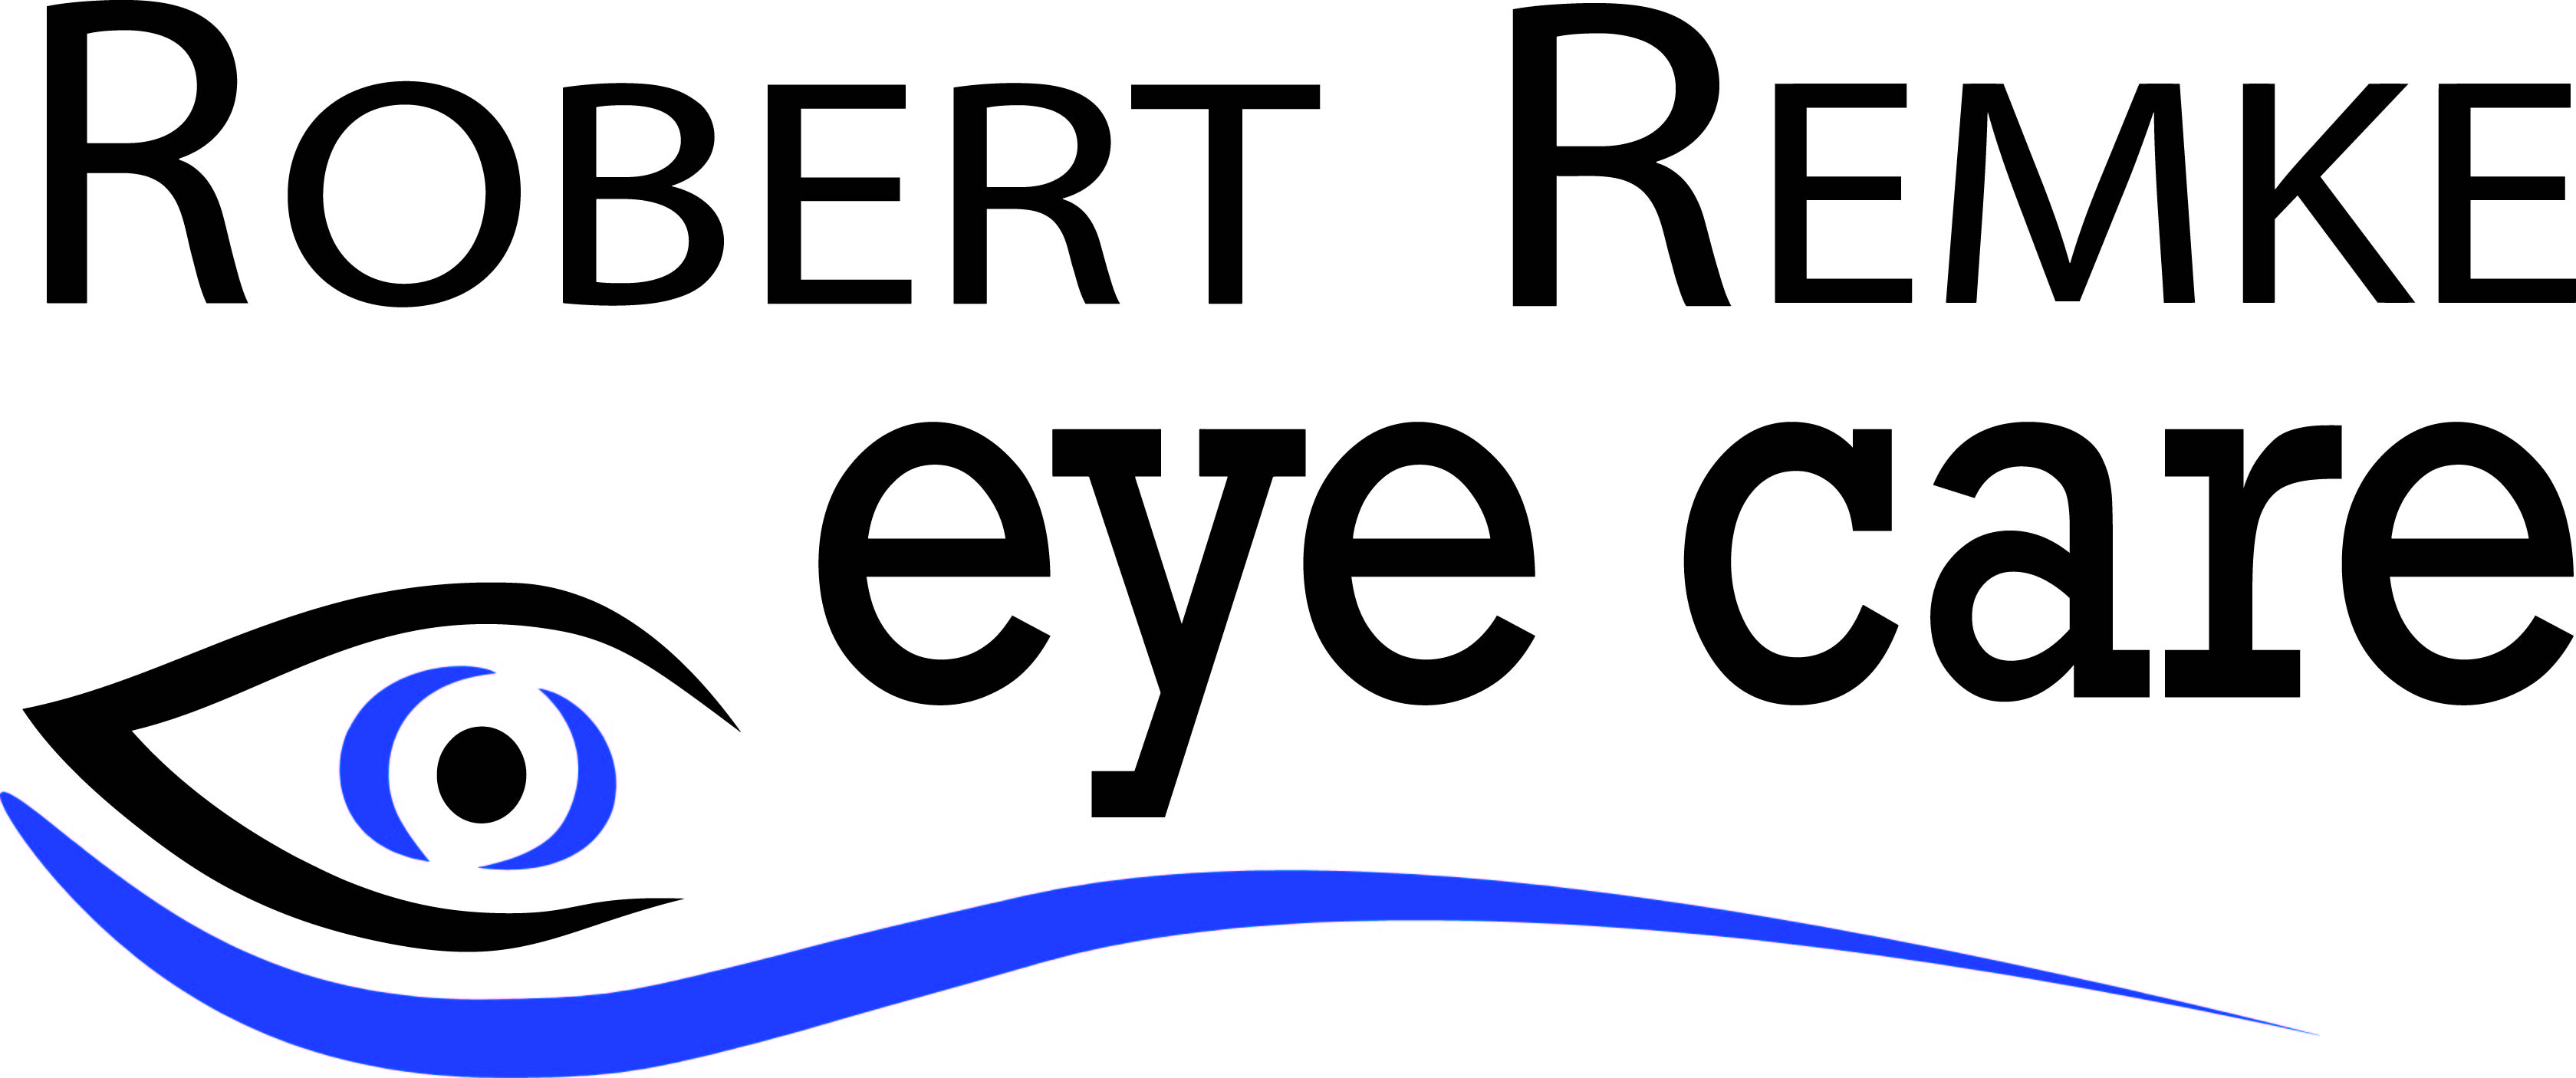 Robert Remke Eye Care logo